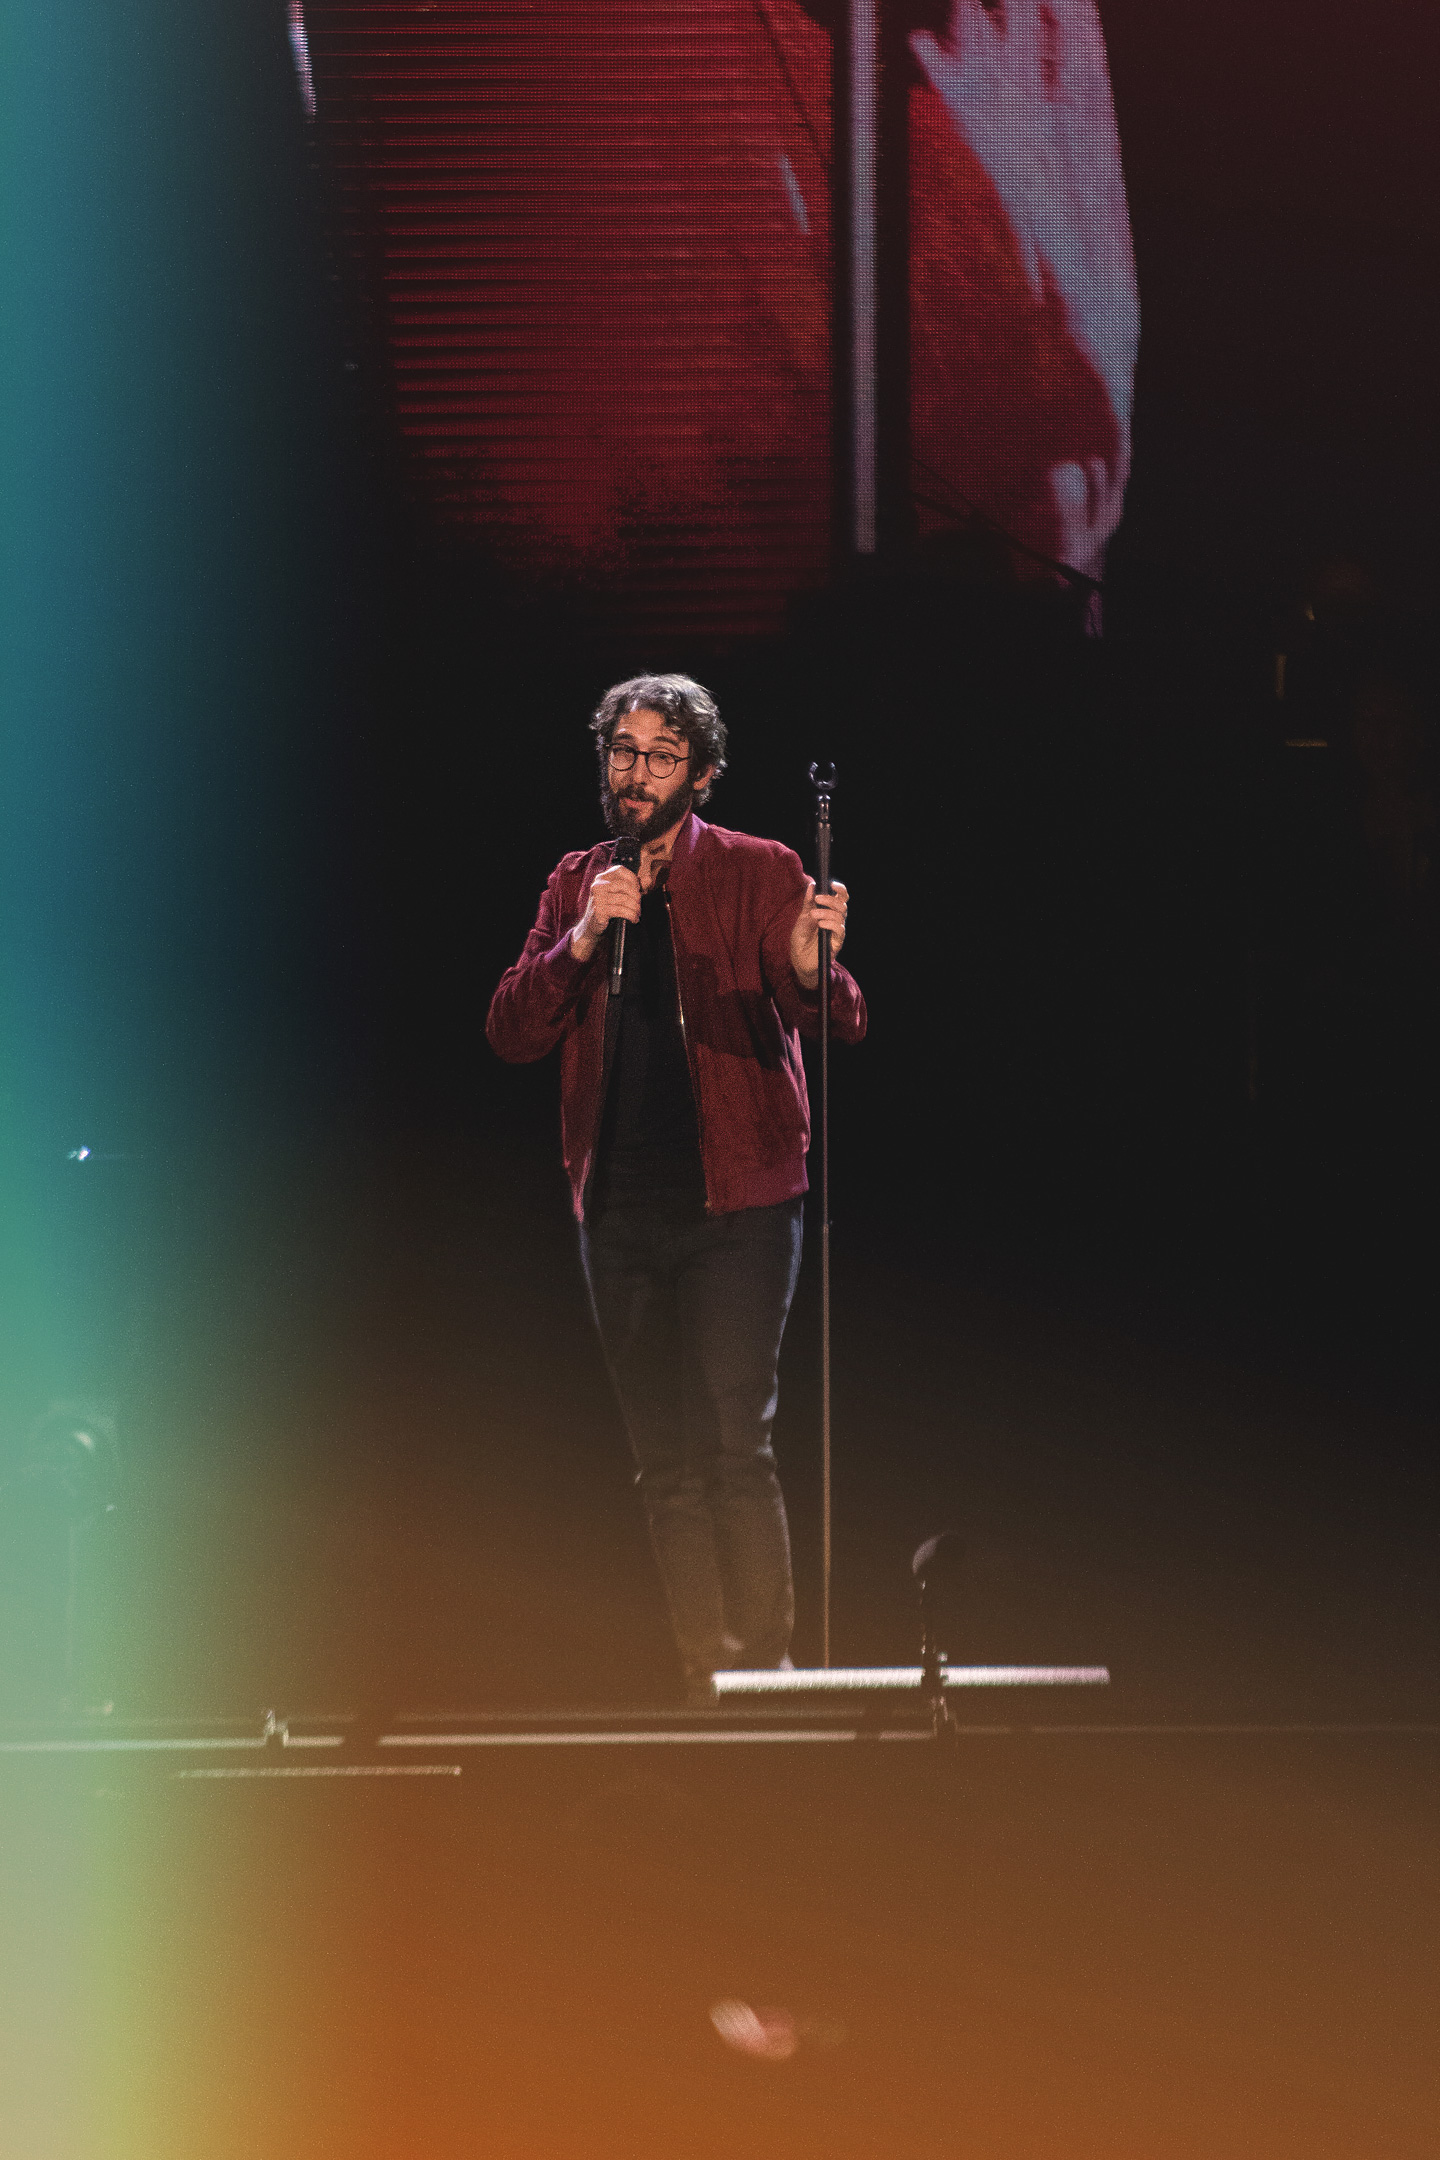 Josh Groban & Idina Menzel at Pepsi Center - Denver Concert Photos